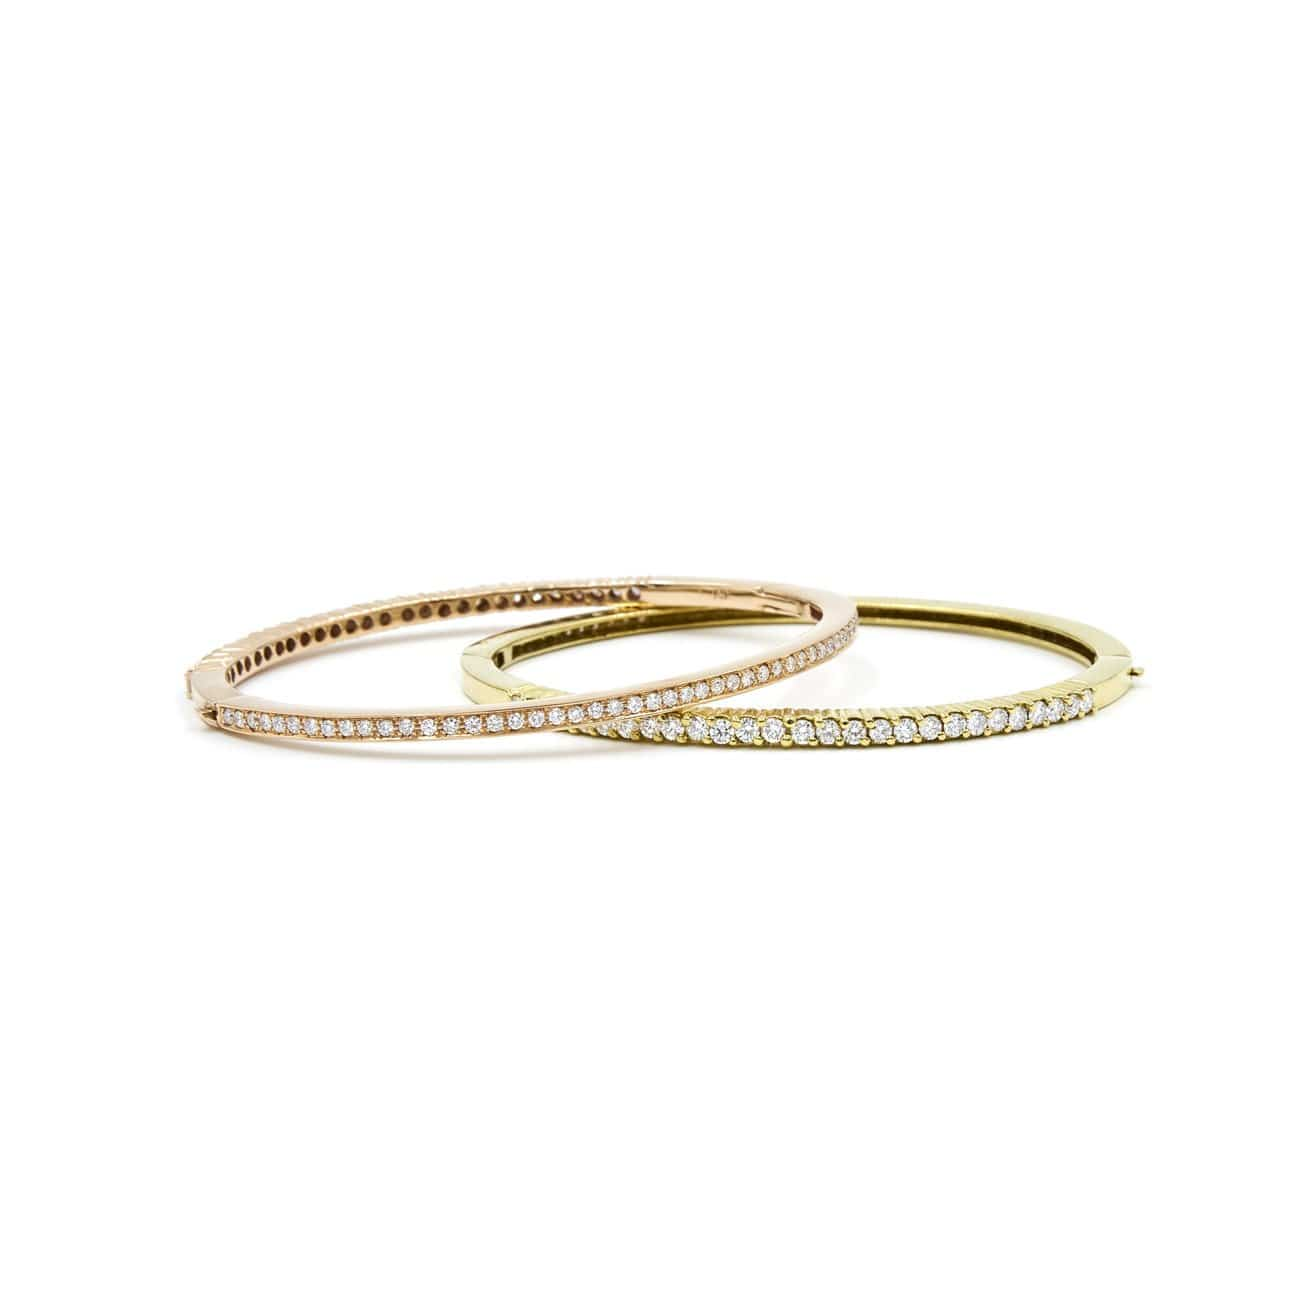 "DIAMOND BANGLE - "" TWO -IN- ONE"" - Chris Aire Fine Jewelry & Timepieces"